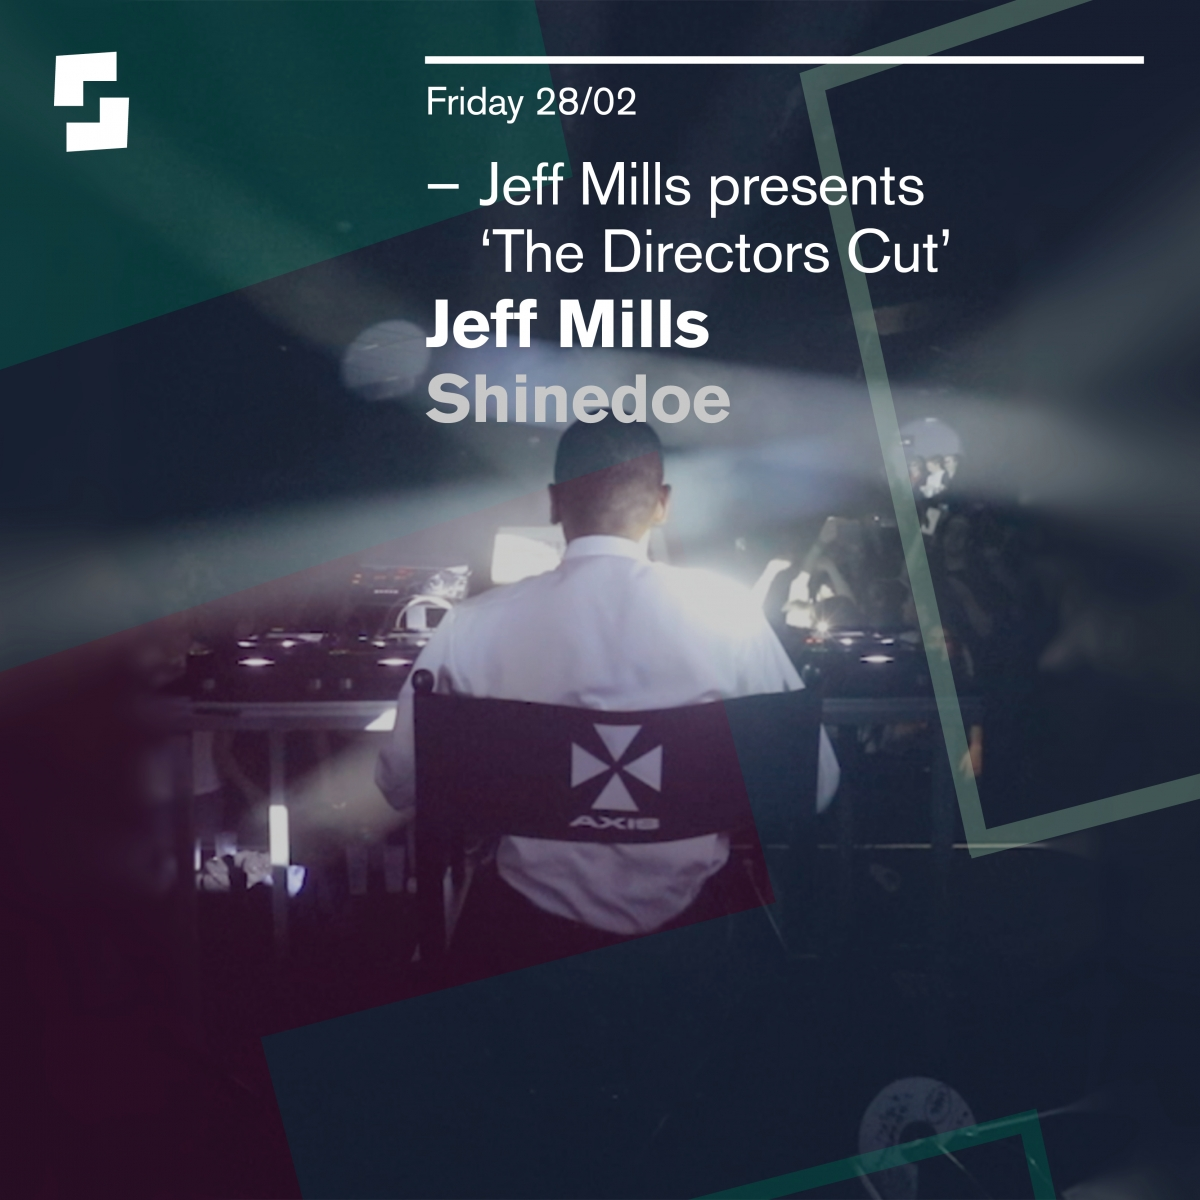 Jeff Mills and Shinedoe at Shelter Amsterdam